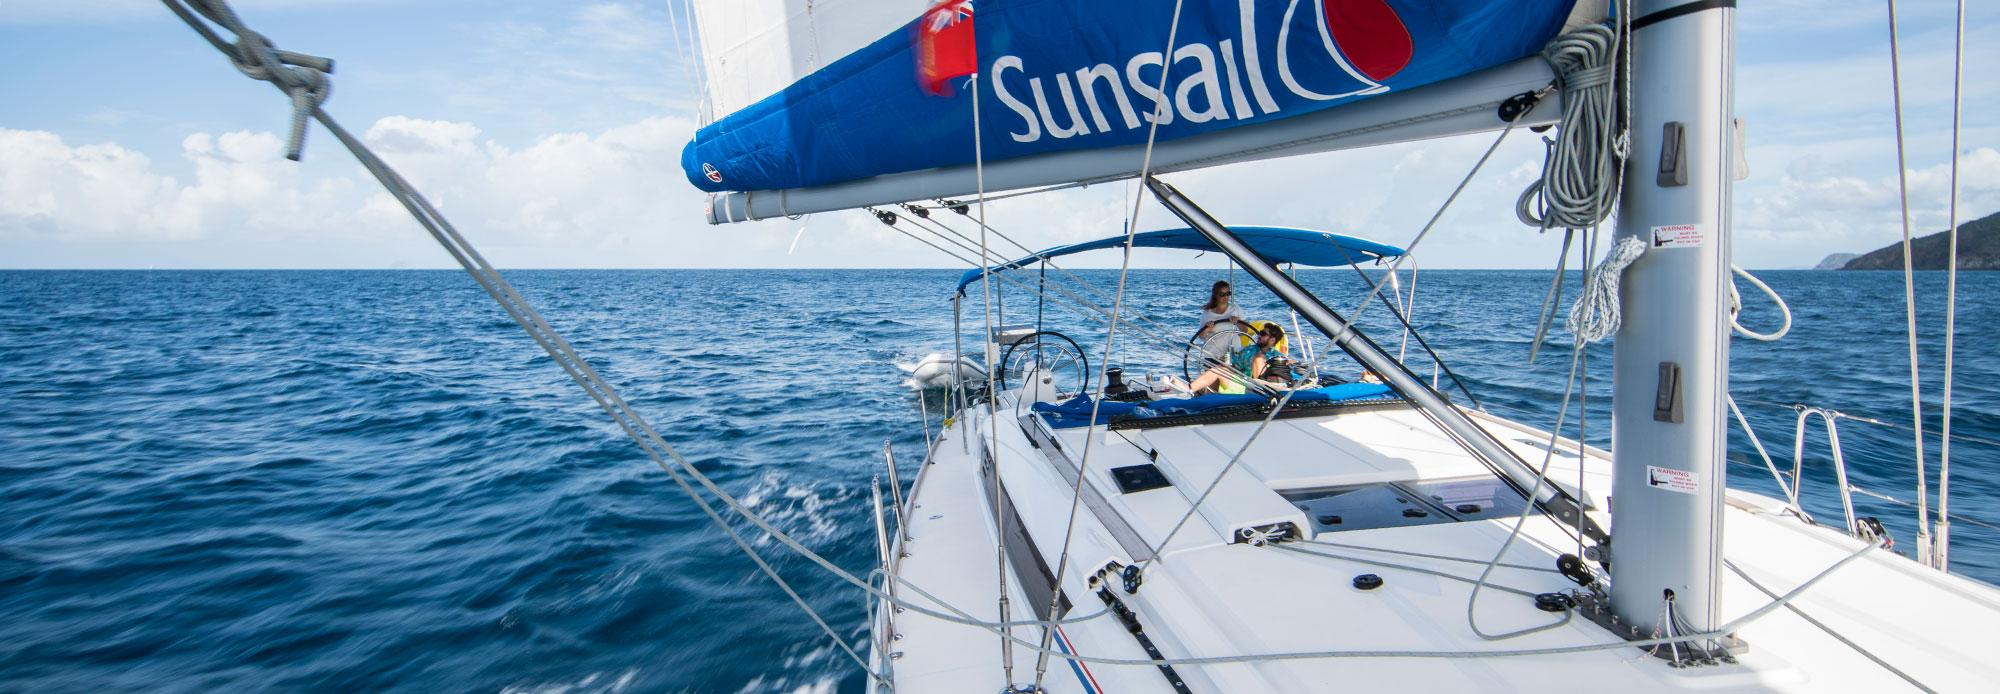 Sunsail Yacht Ownership